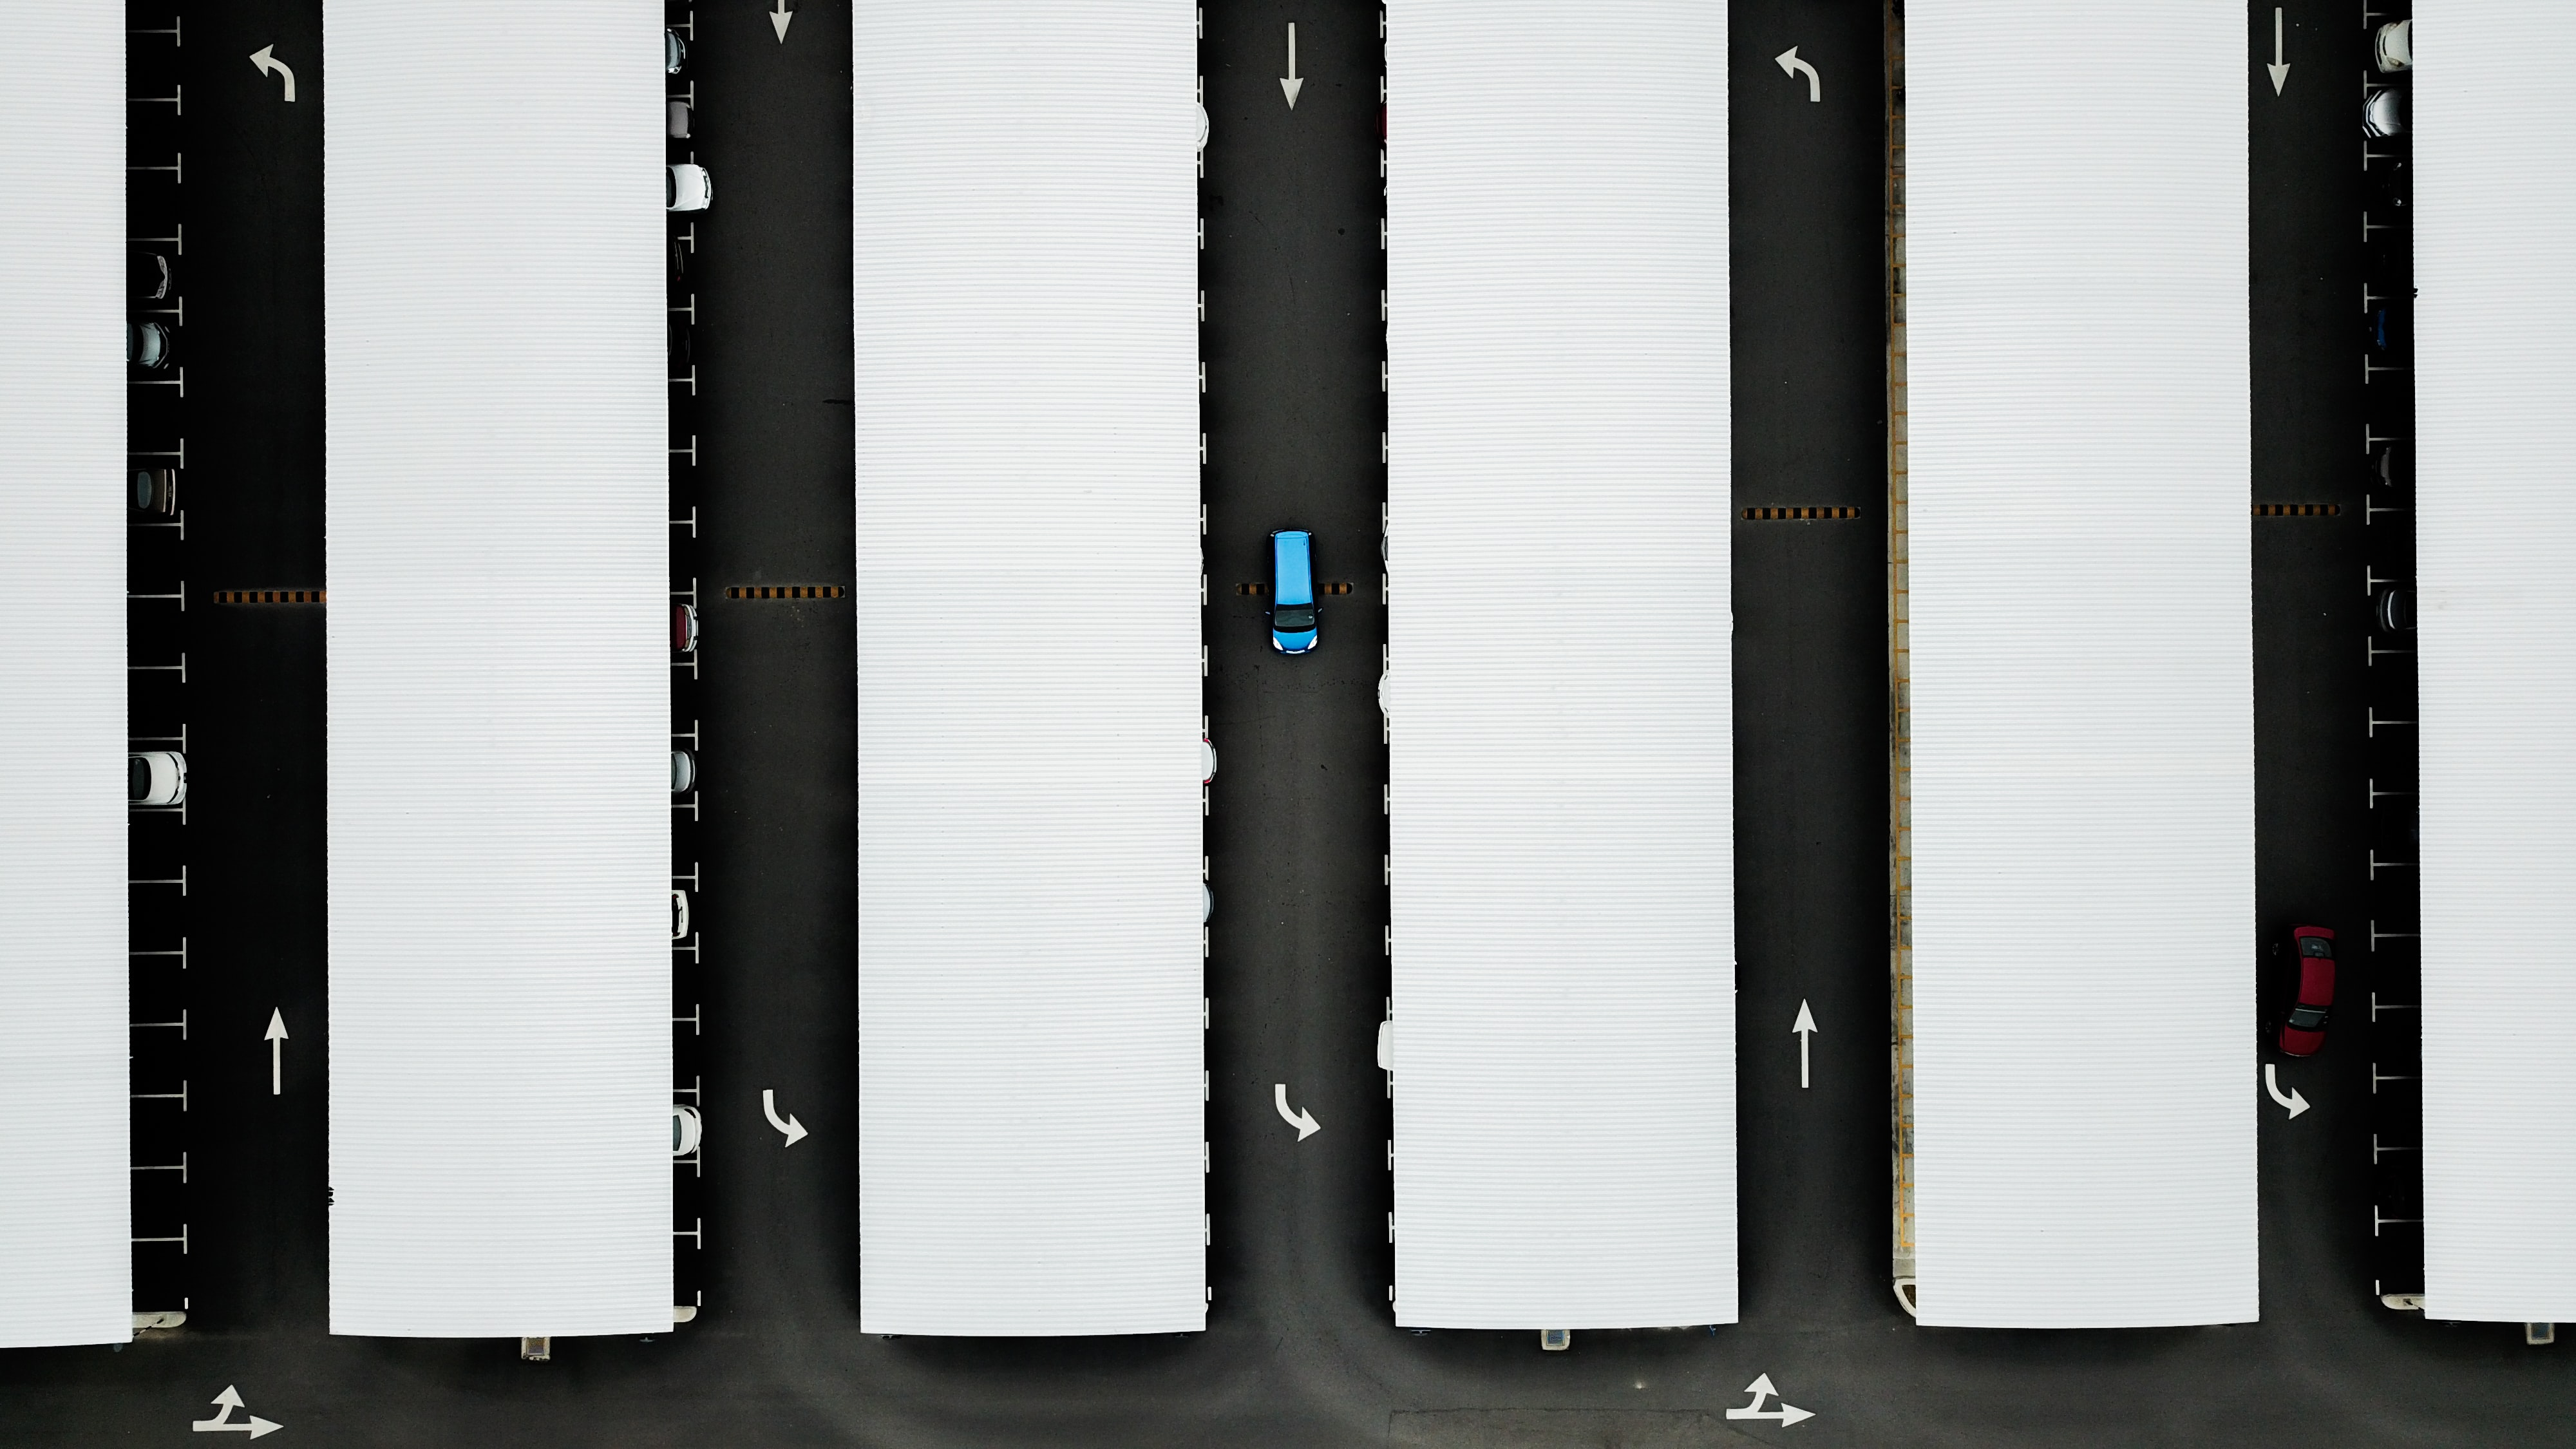 top-view photography of white containers